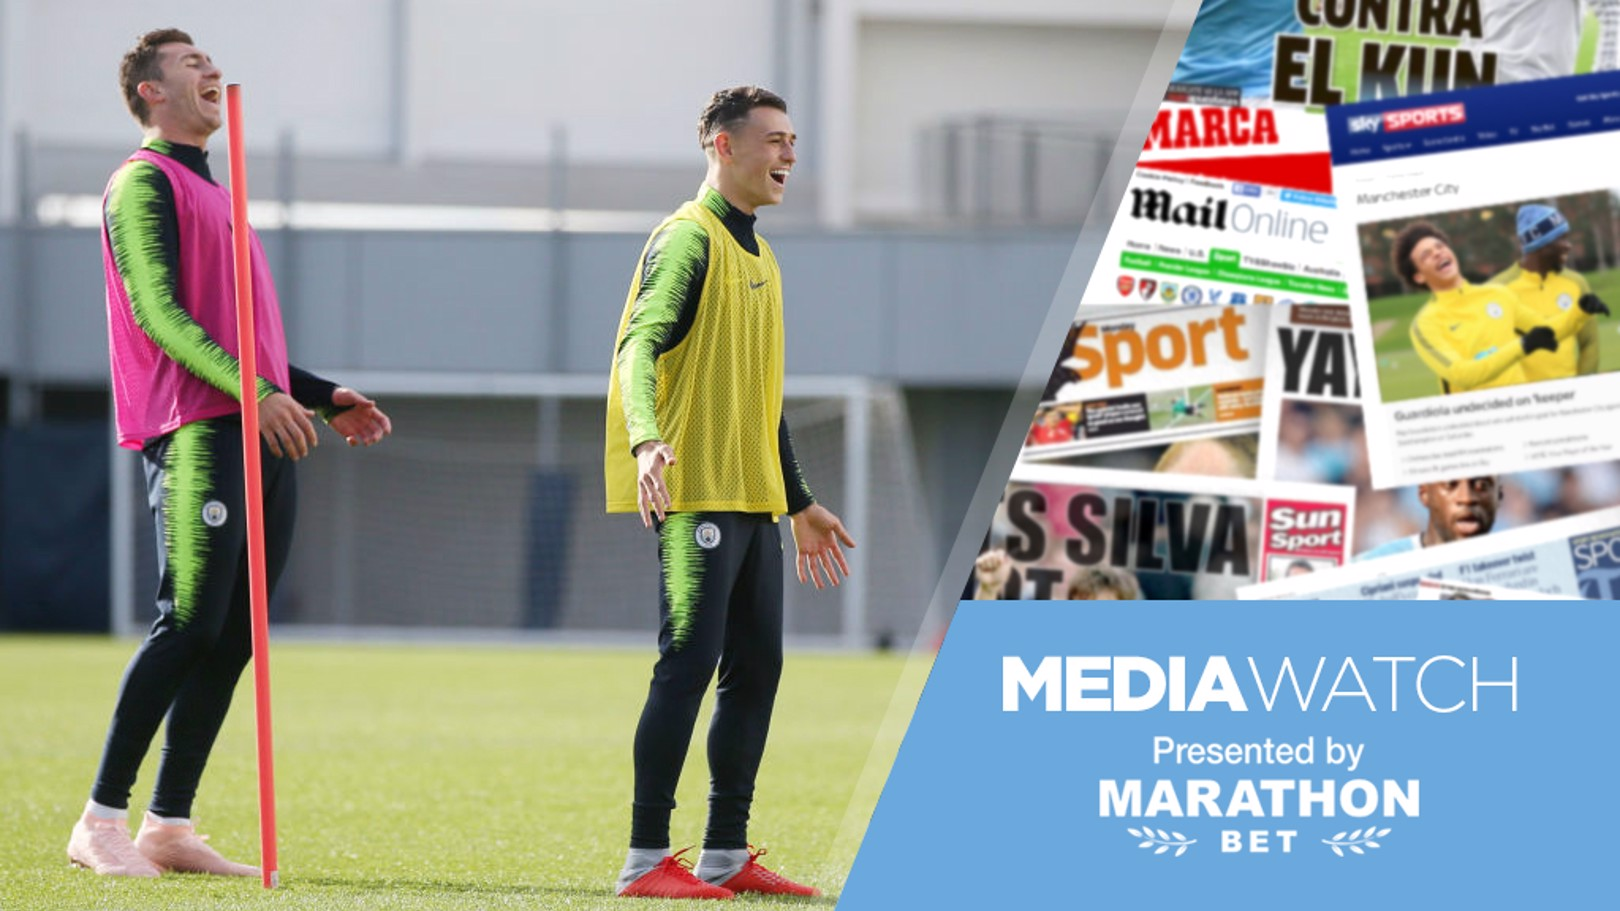 PAPER TALK: Phil Foden and Aymeric Laporte have been speaking to the media.